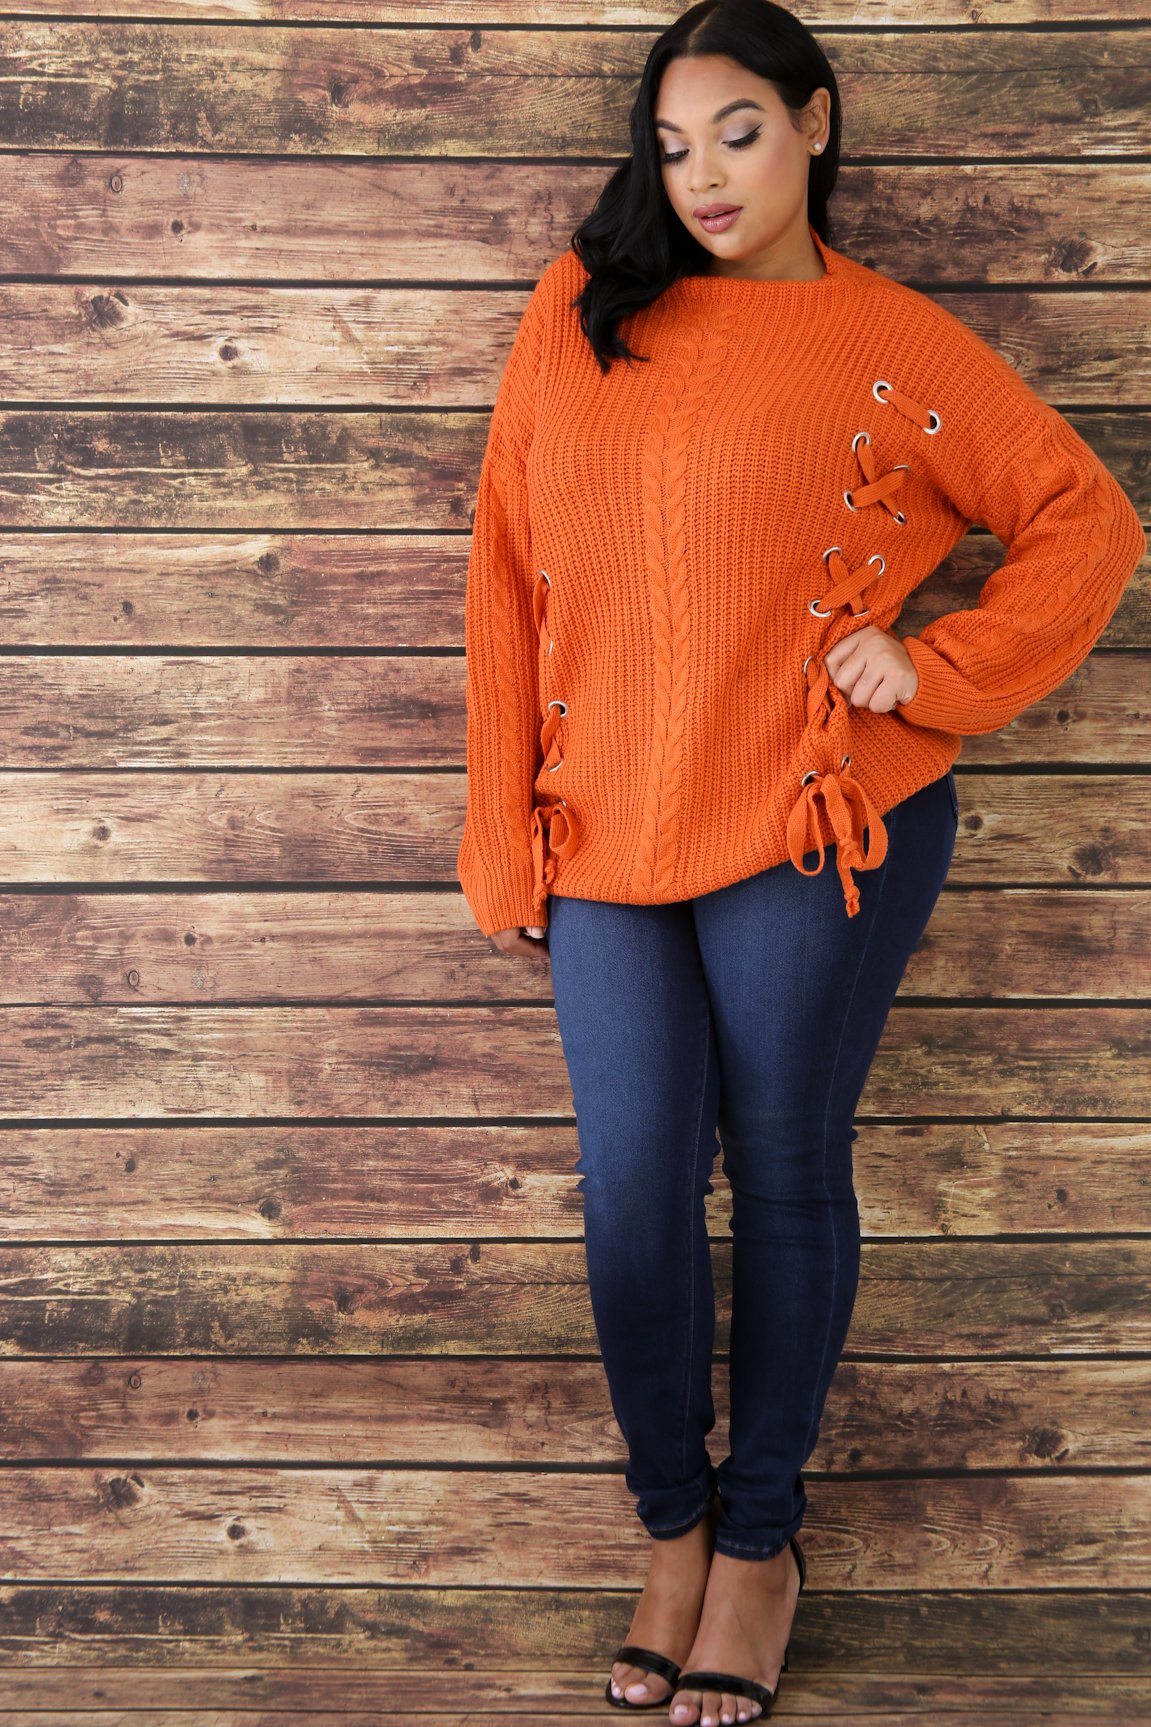 Eyelet Lace Up Sweater Top